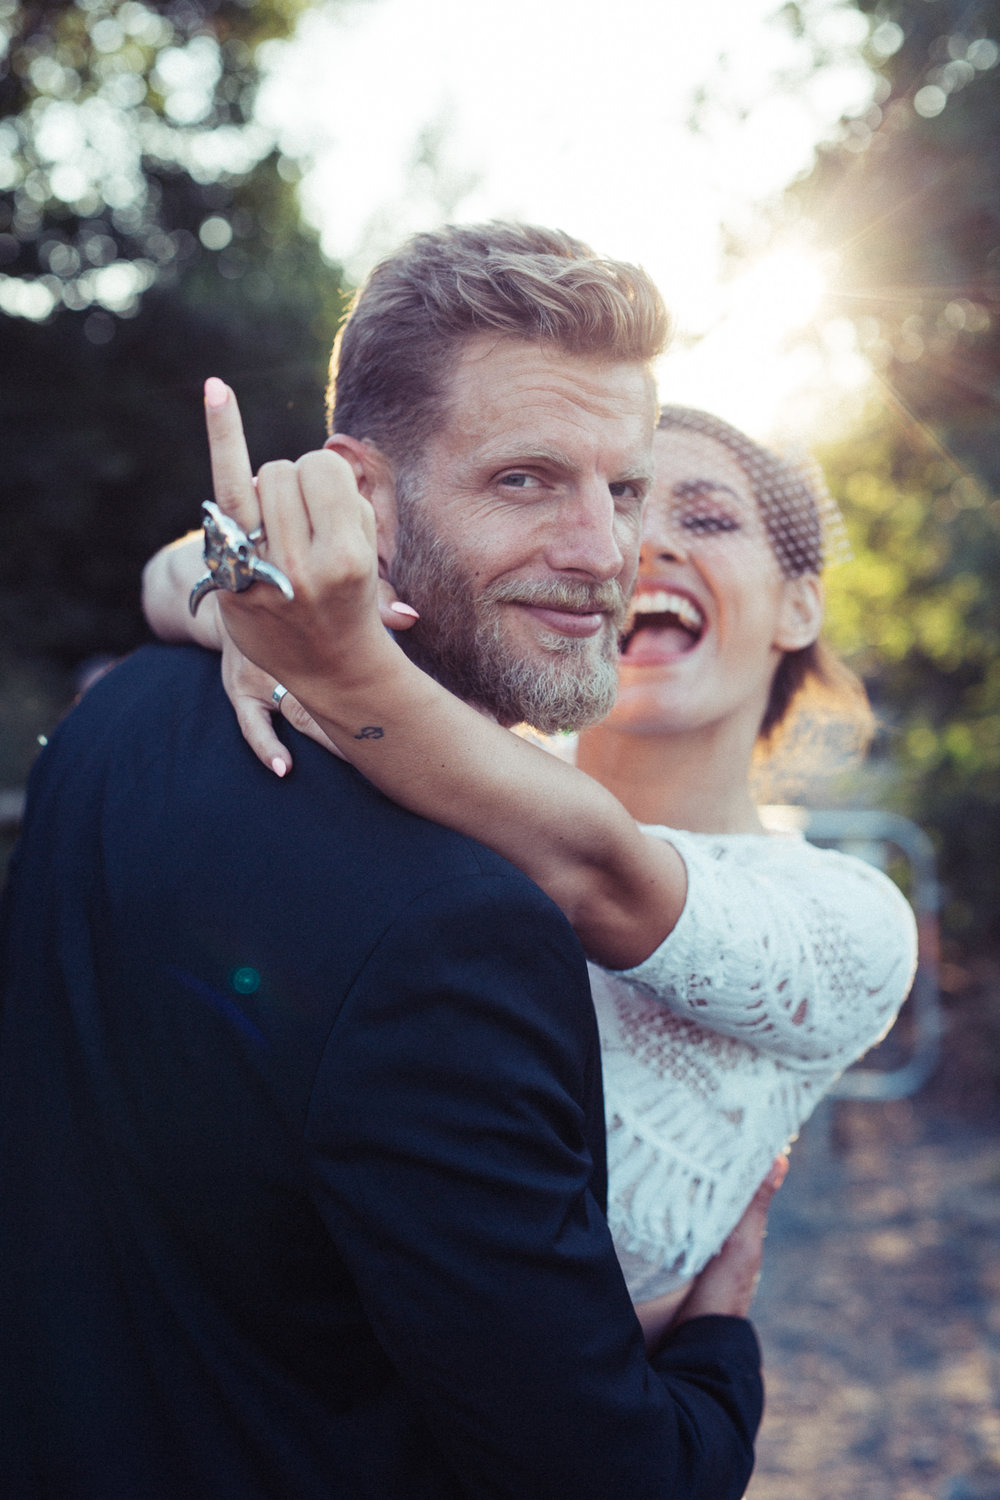 Cheeky festival couple | Image courtesy of Adj Brown